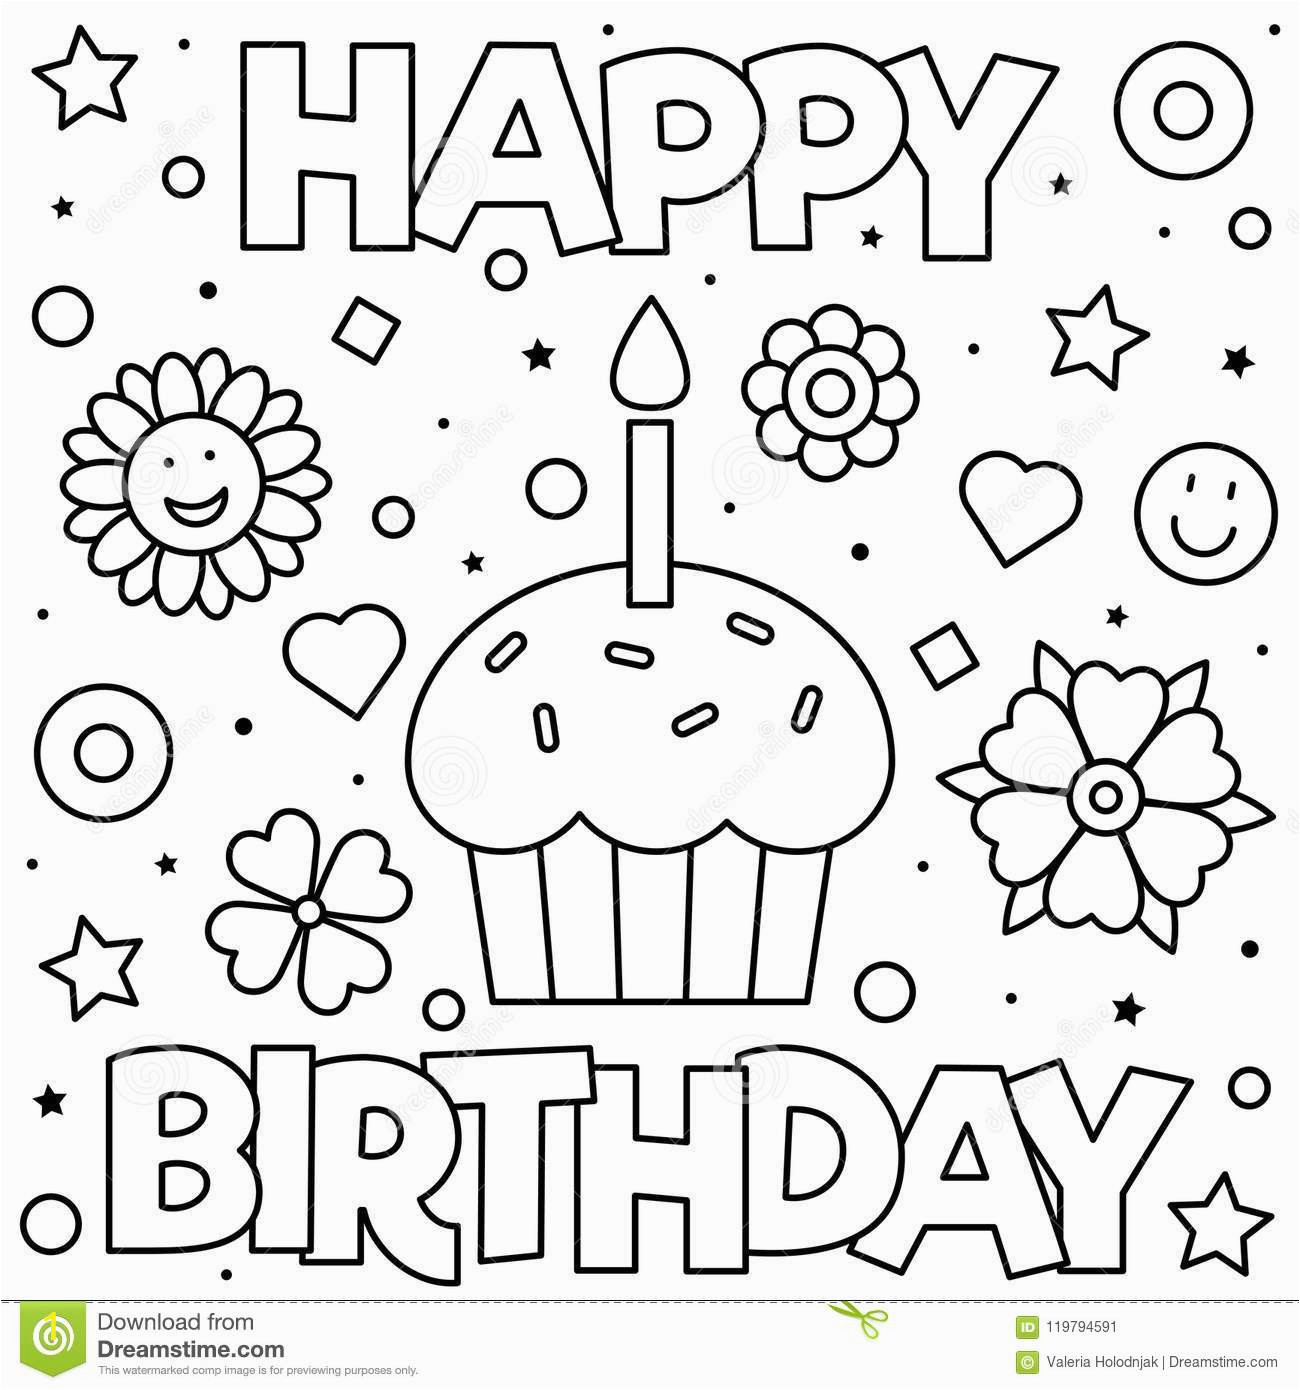 happy birthday coloring page black white vector illustration coloring page vector illustration